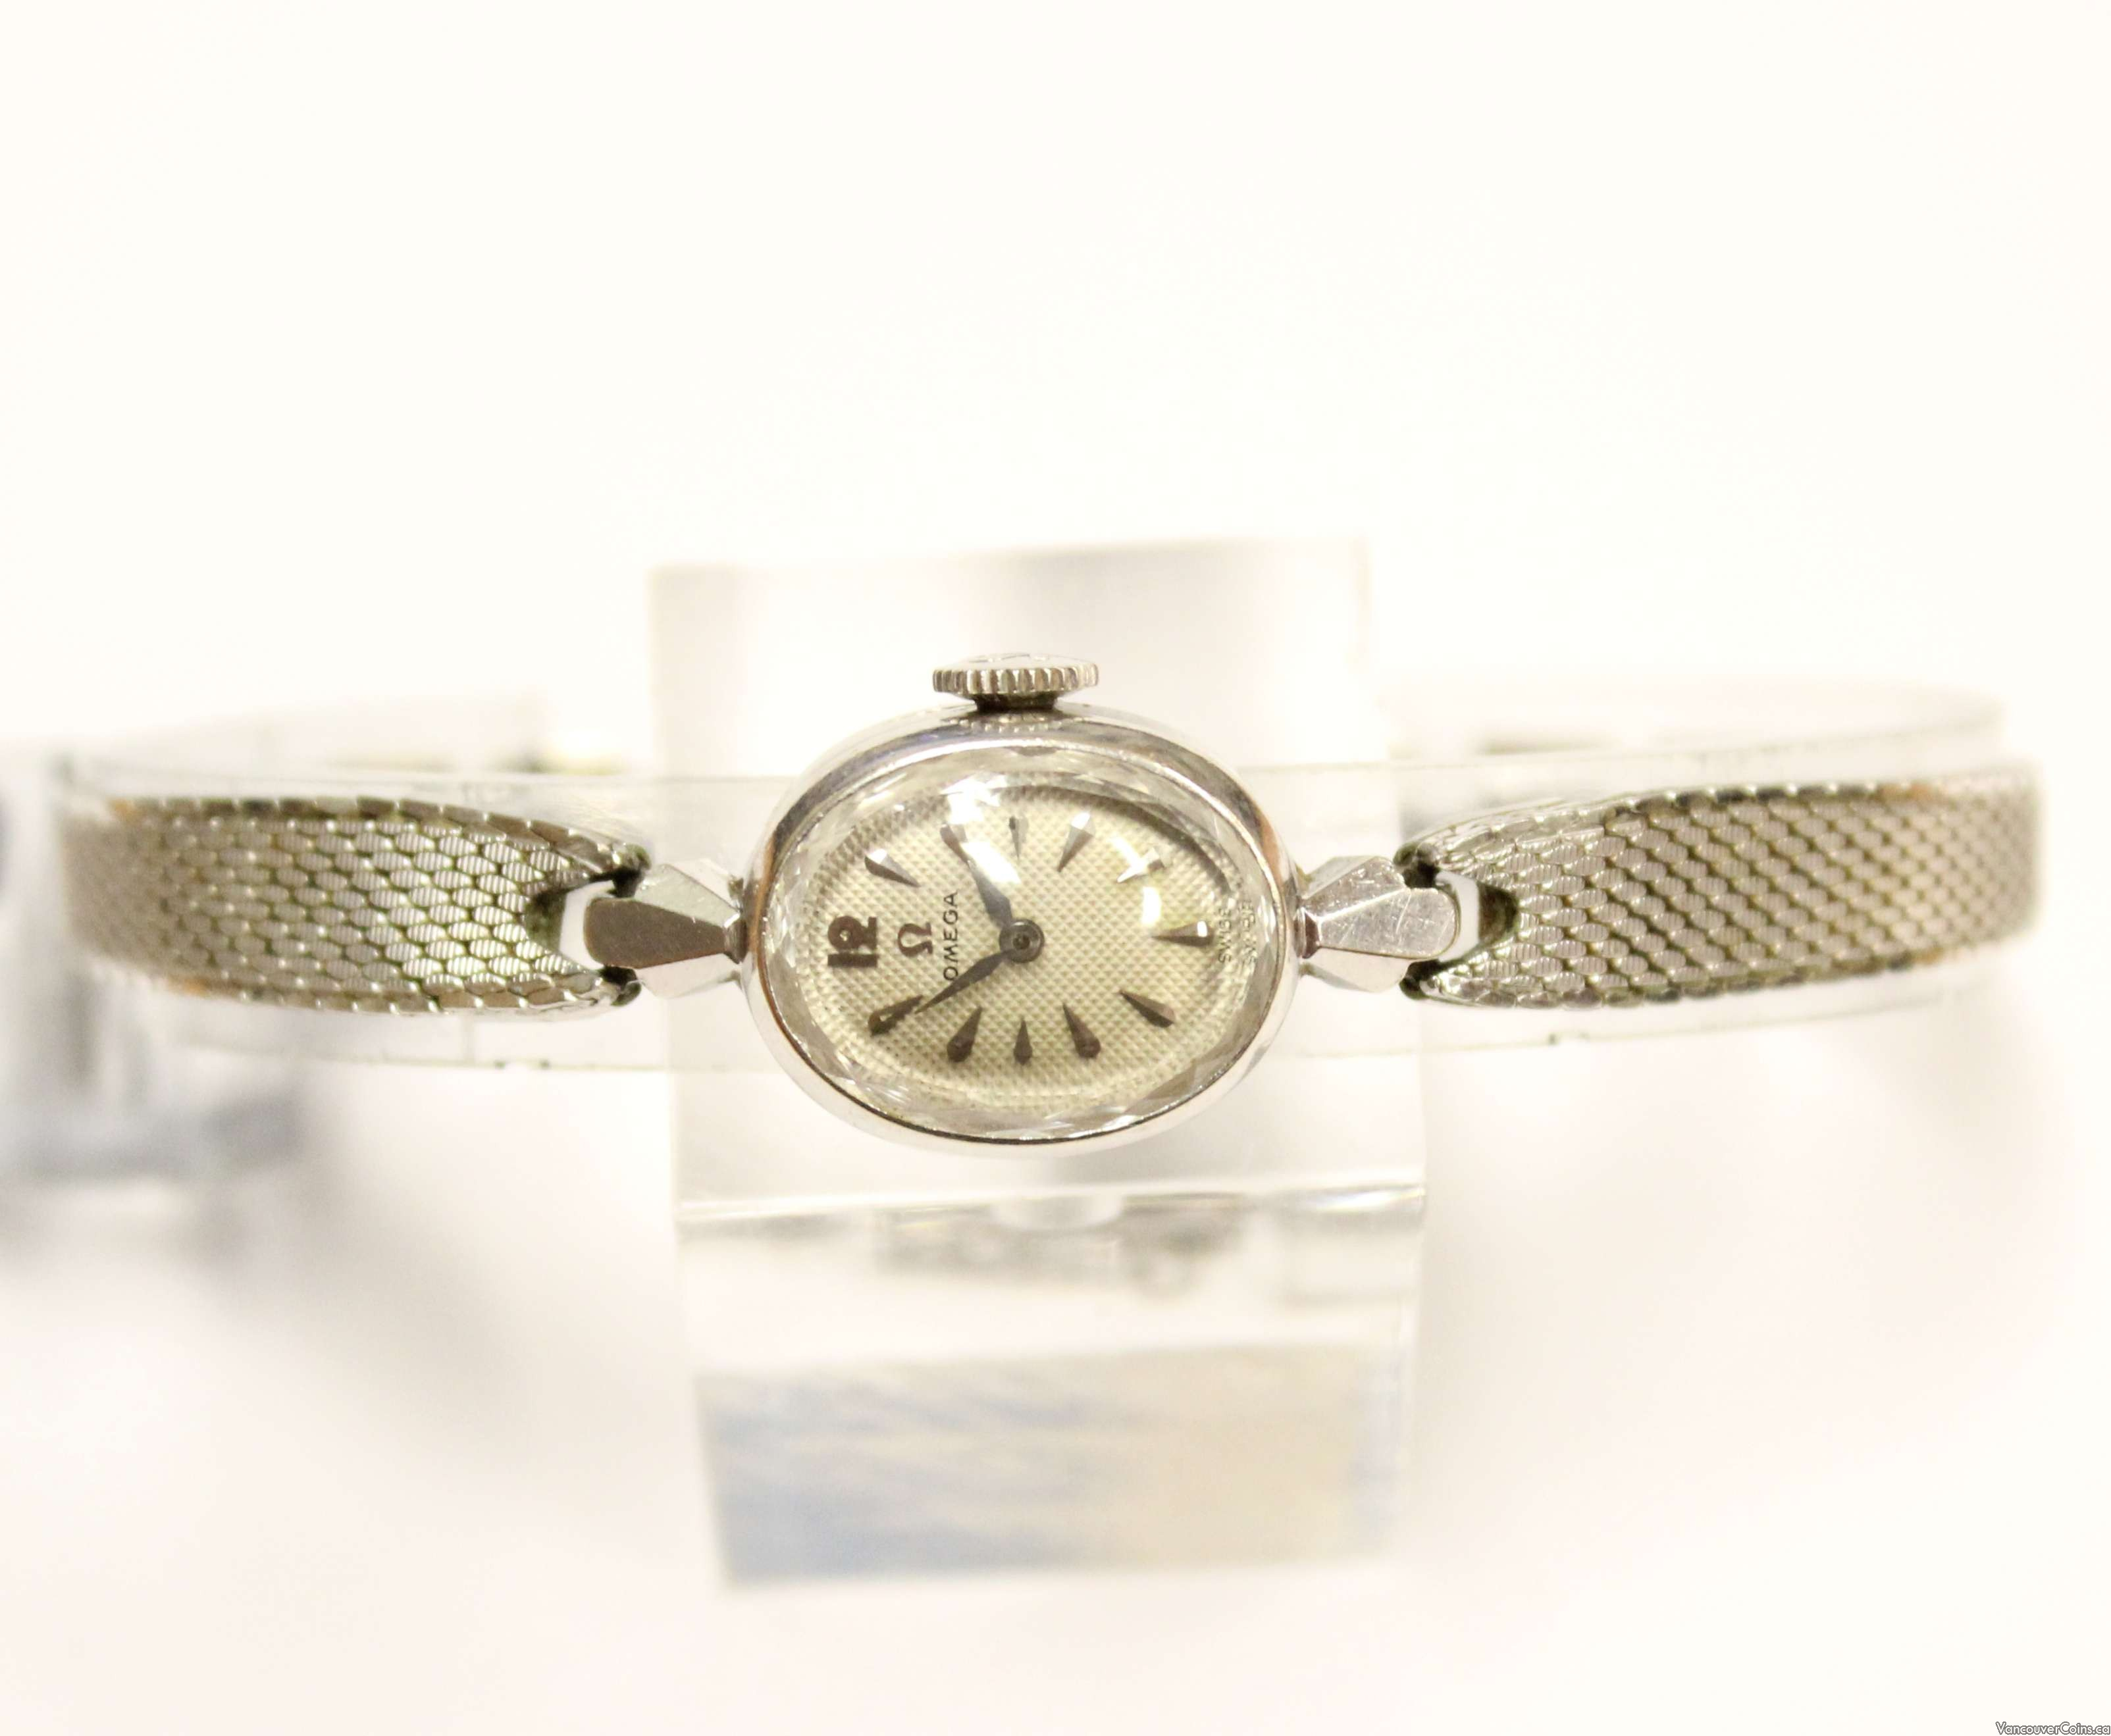 1956 Ladies Omega 14K wg watch 17J 481